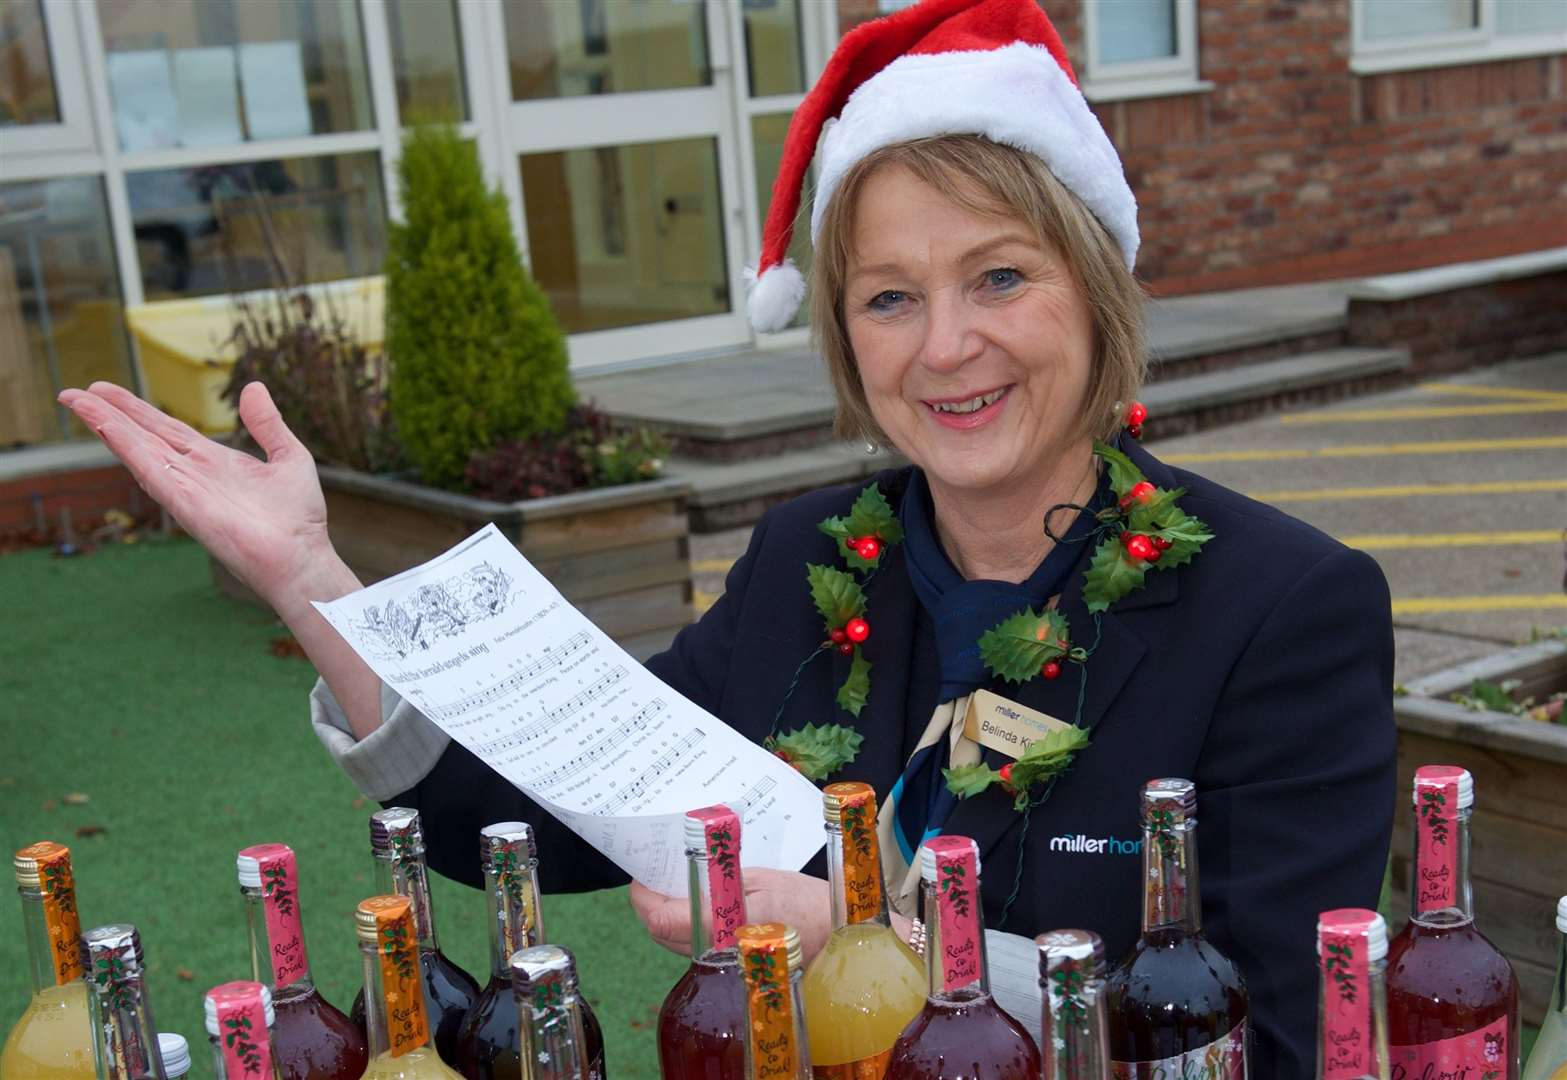 A Bottesford business is spreading festive cheer for a good cause.